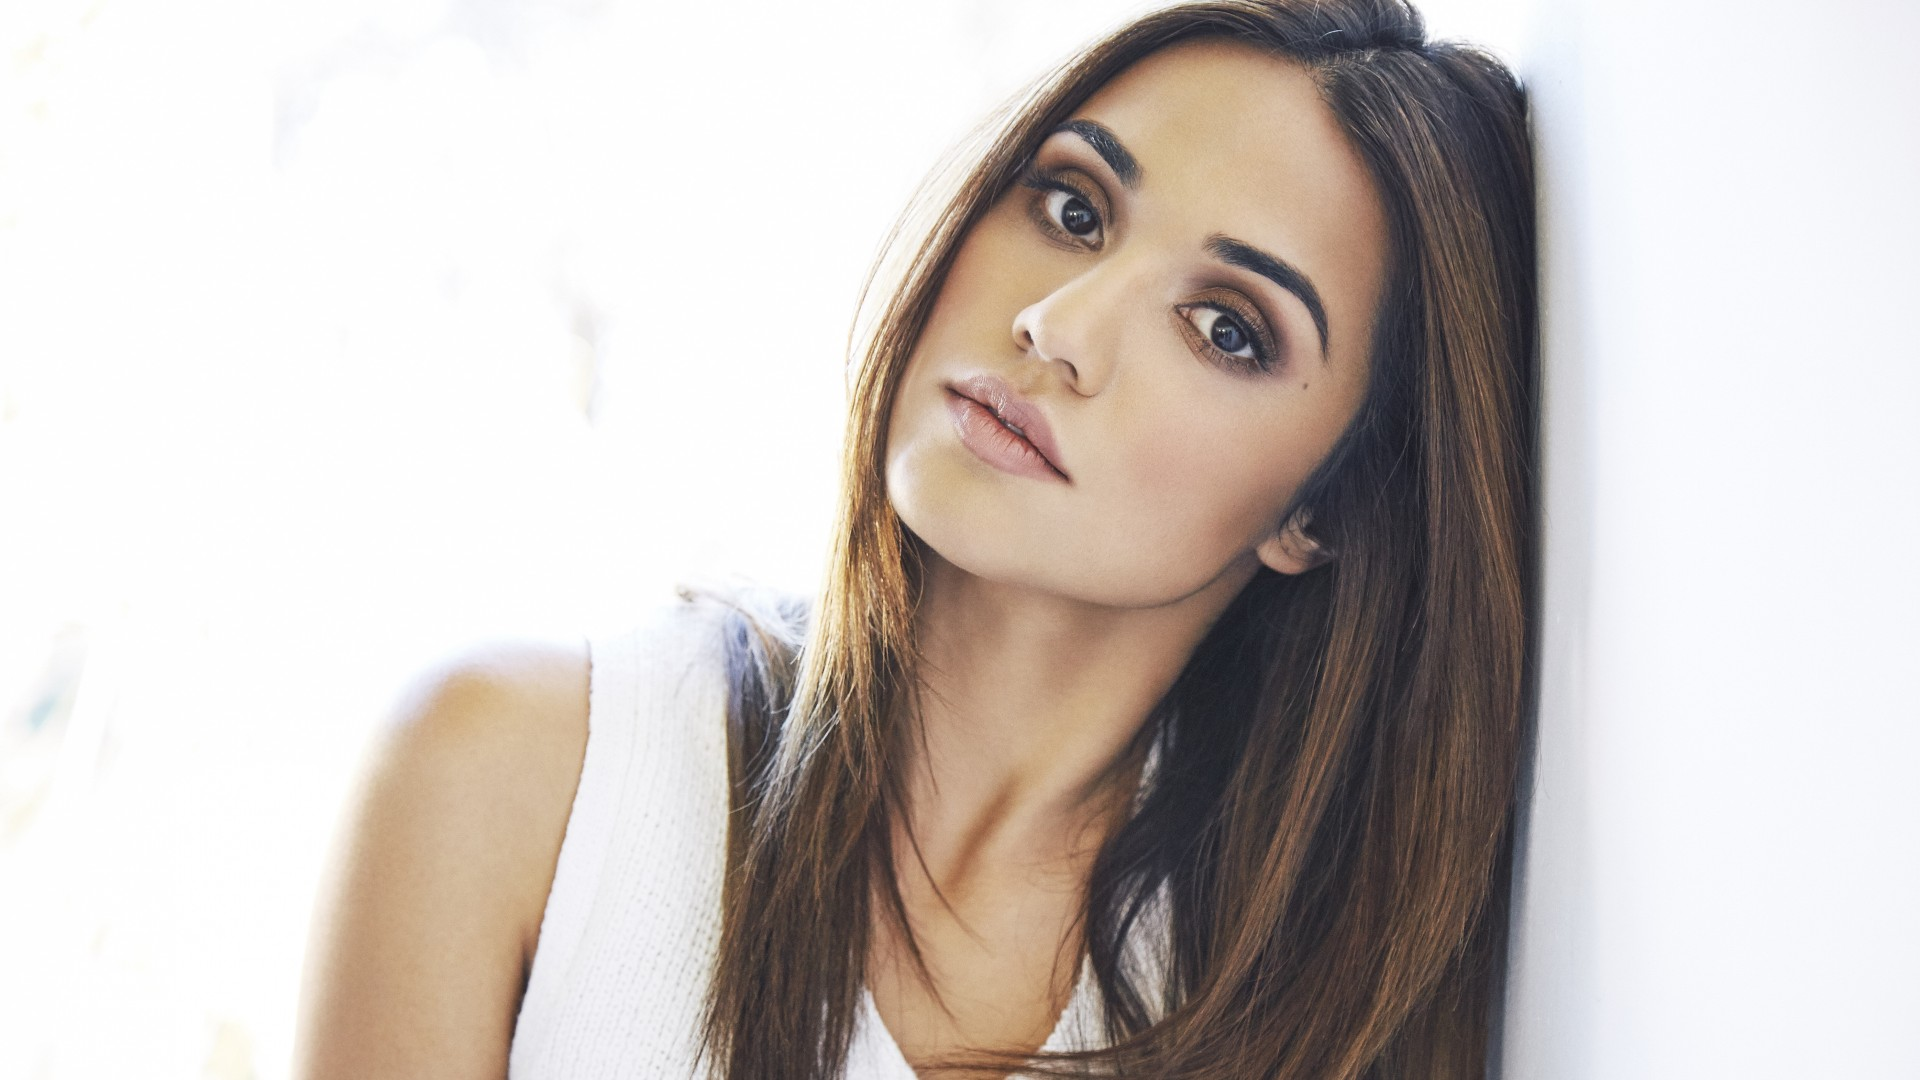 Korean Cute Desktop Wallpapers Summer Bishil American Actress 5k Wallpapers Hd